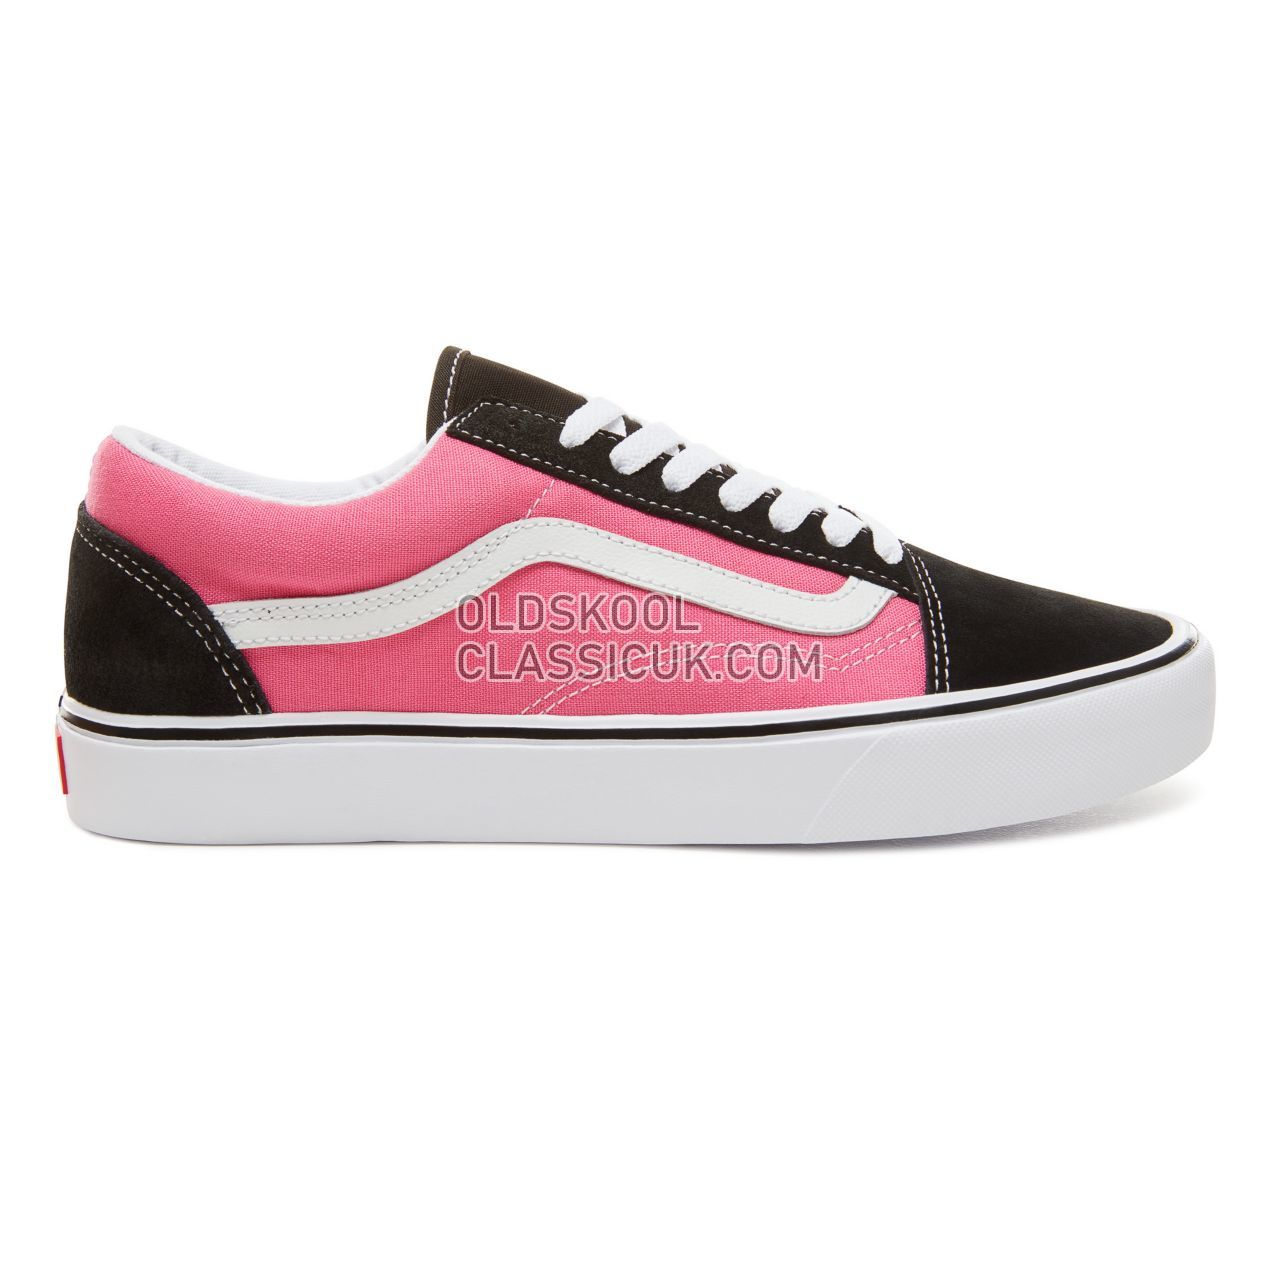 Vans Suede 2-Tone Old Skool Lite Sneakers Mens Womens Unisex (2Tone) Black/Magenta VA2Z5WUB0 Shoes